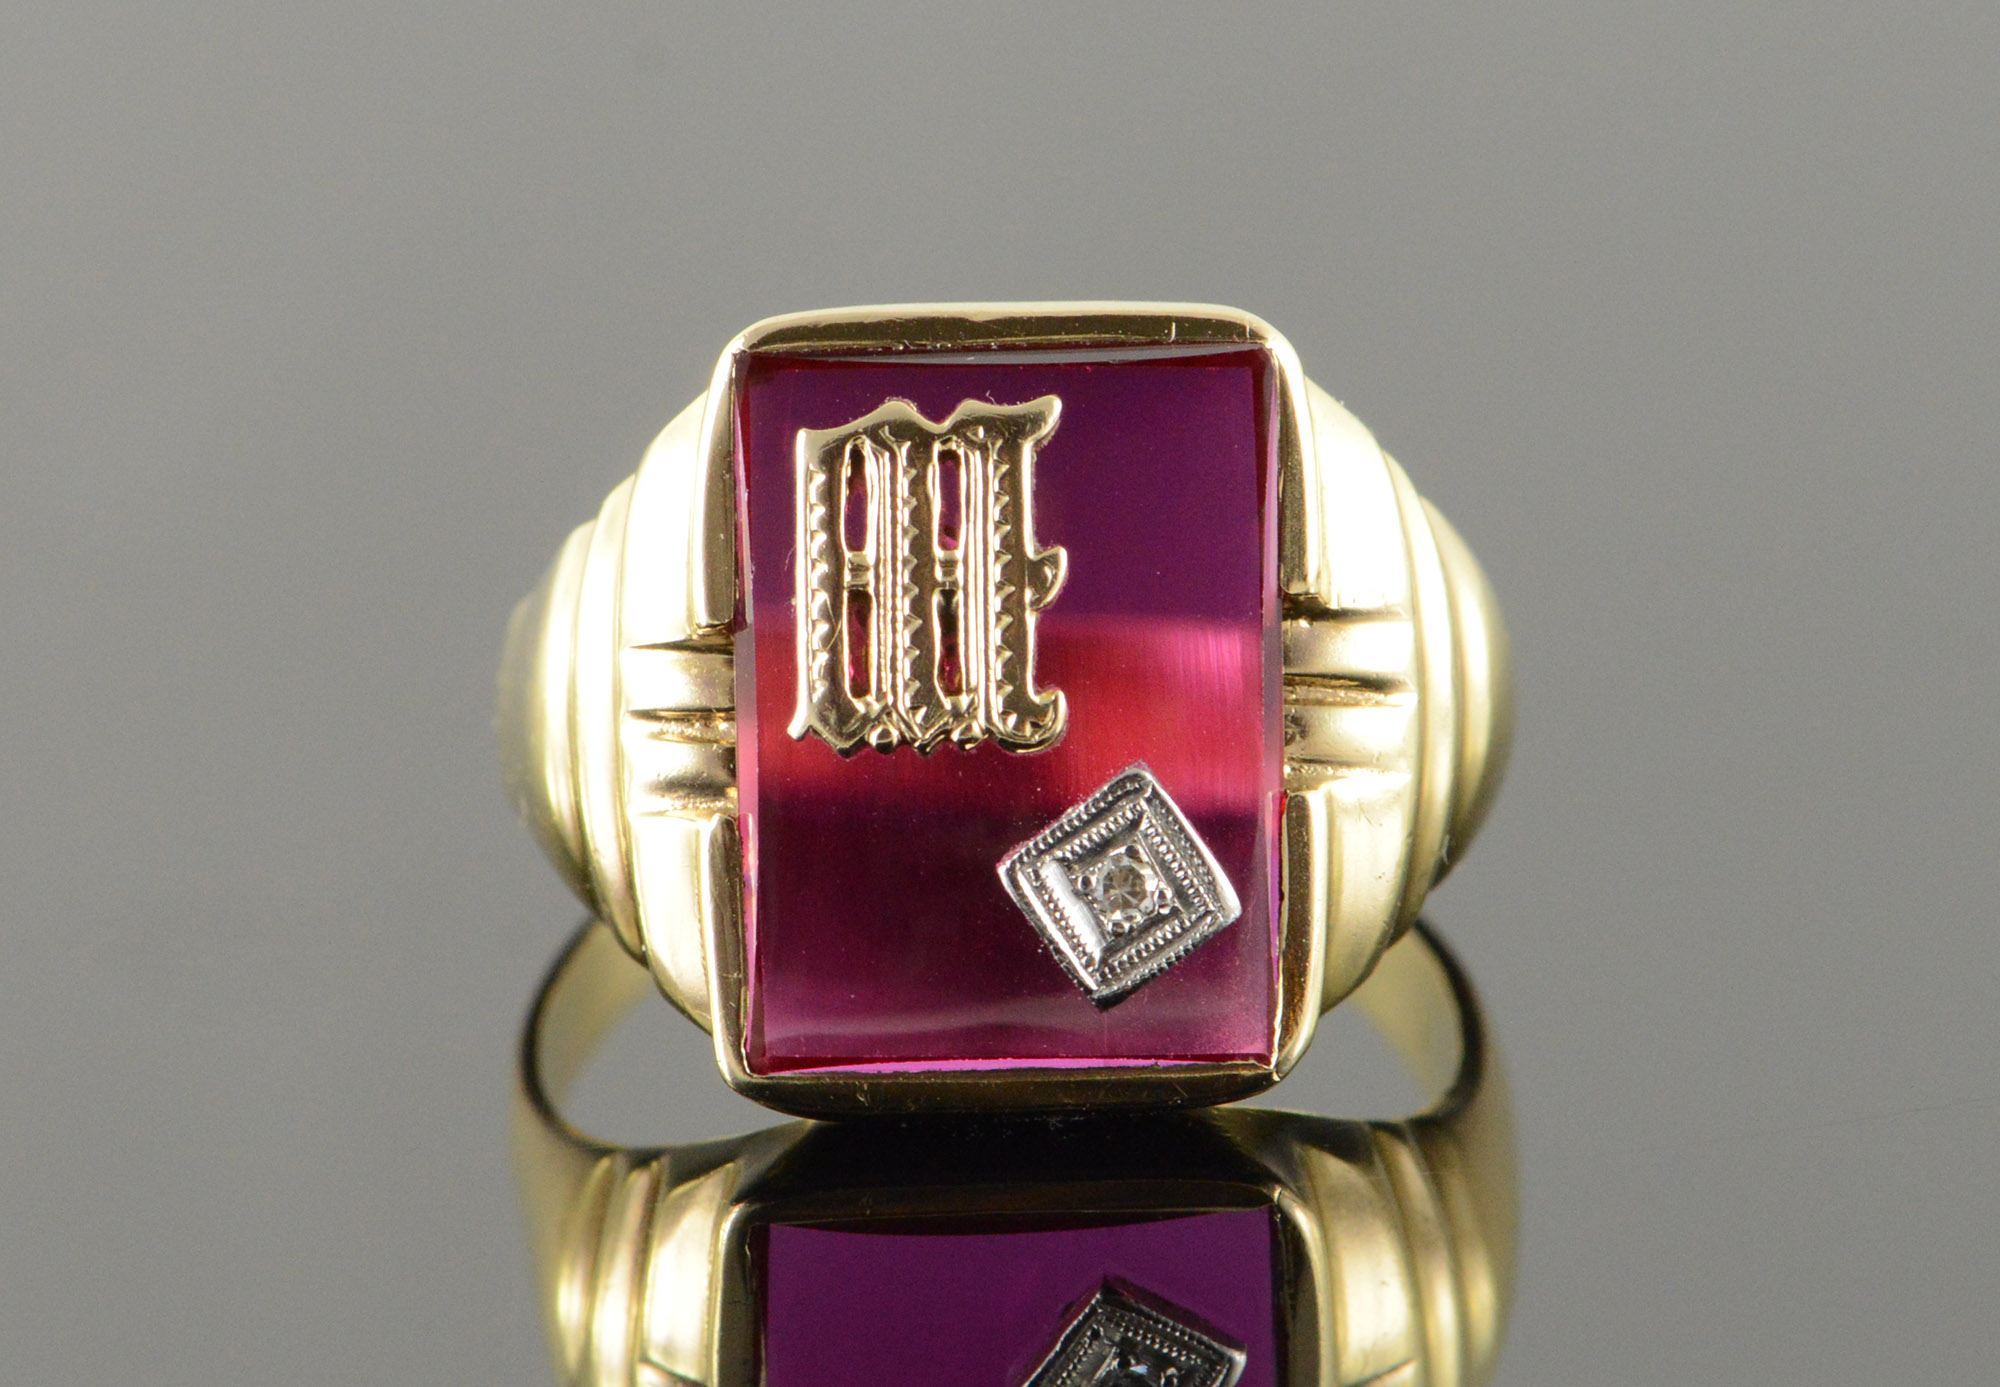 10k 6 5g m w red stone inset diamond monogram initial letter men u0026 39 s yellow gold ring  size 11 5